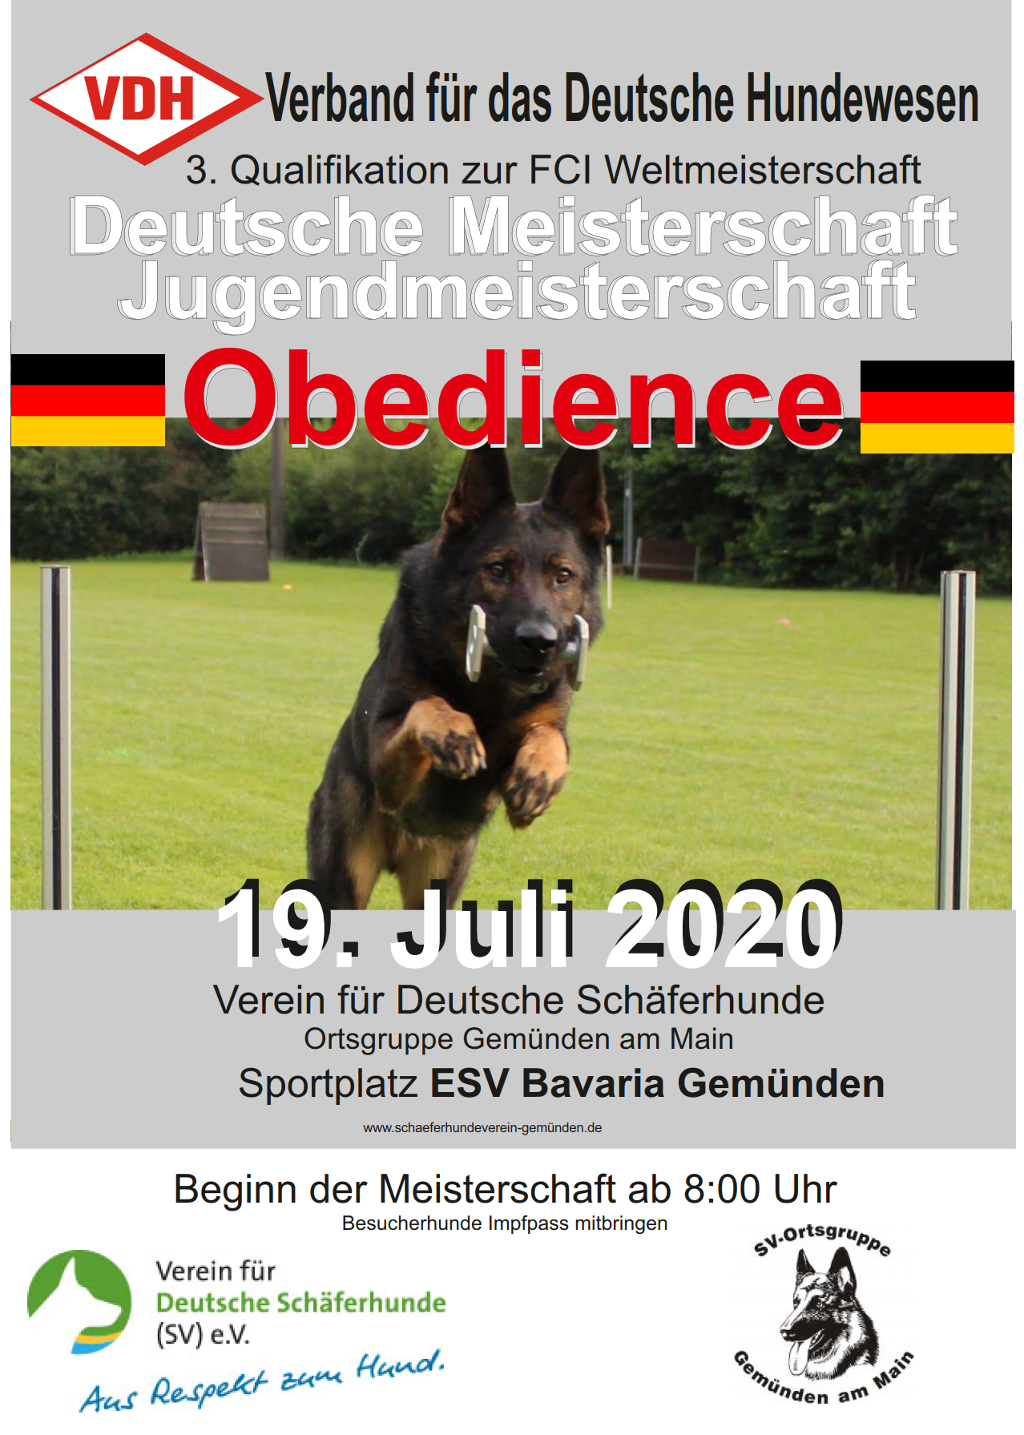 vdh_obedience_plakat_2020_1.png